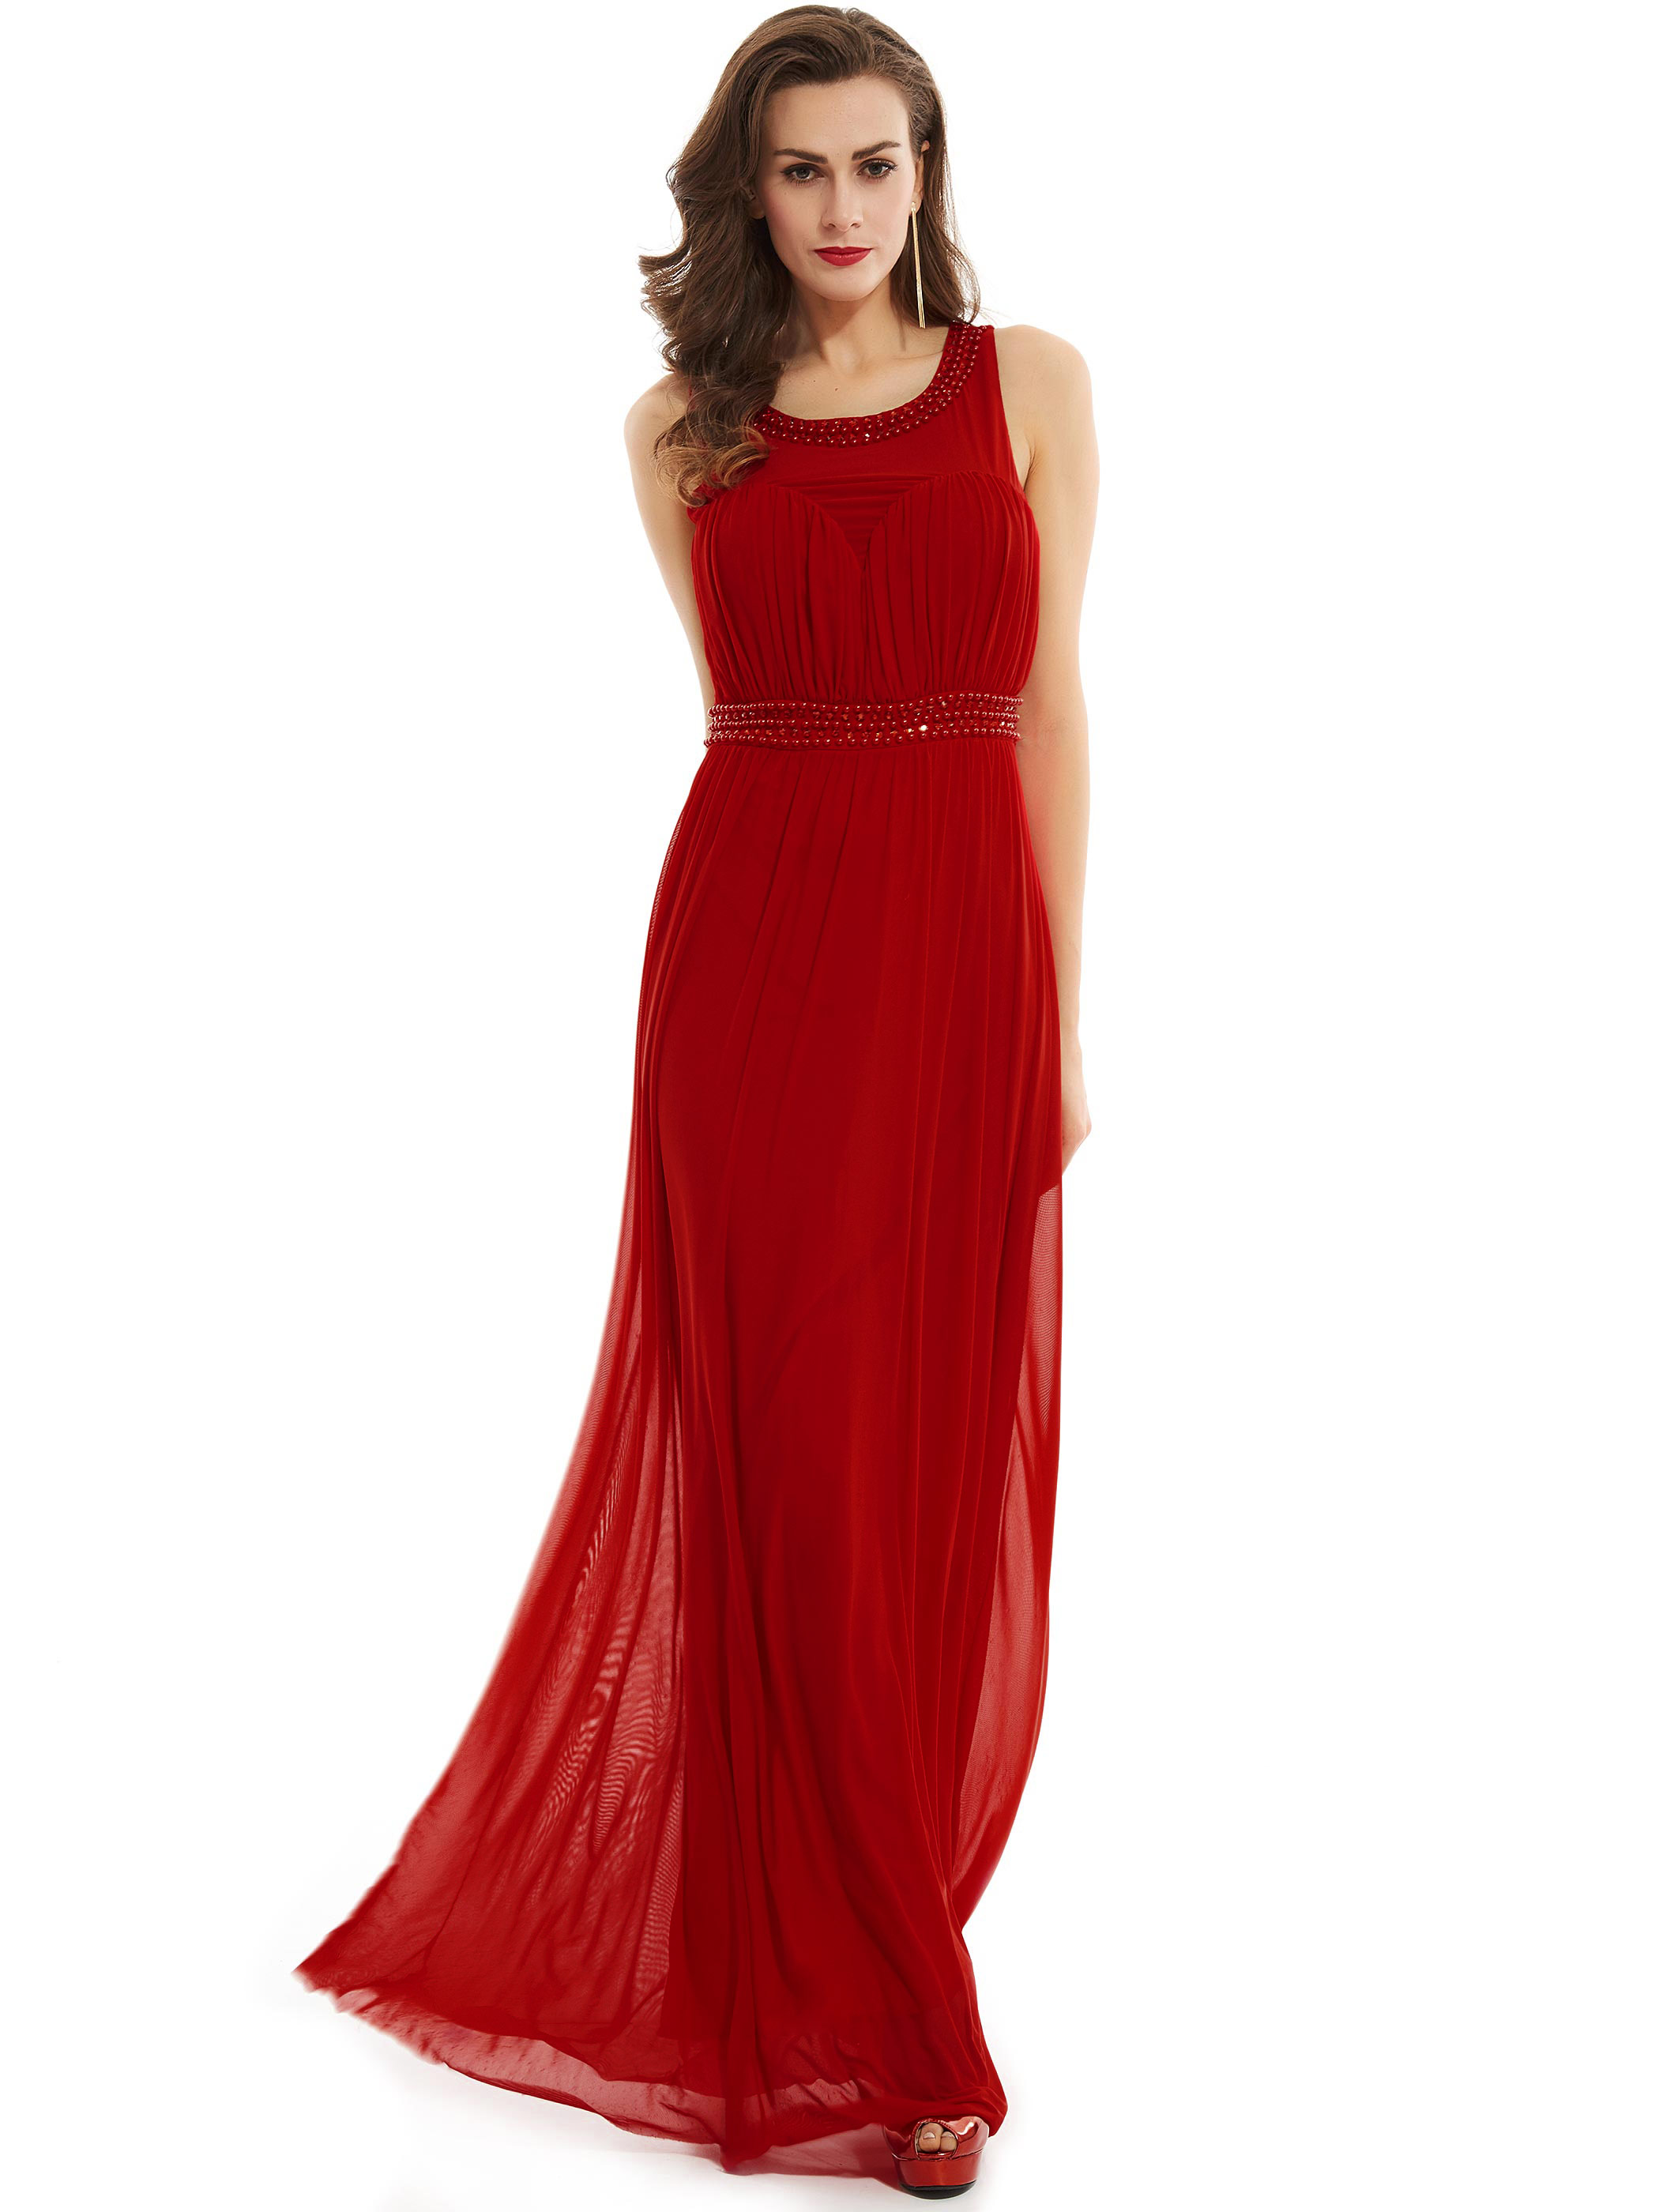 Dressv Scoop Long Evening Dress Red Sleeveless A Line Floor Length Gown Black Crystal Beaded Ruched Prom Formal Evening Dresses